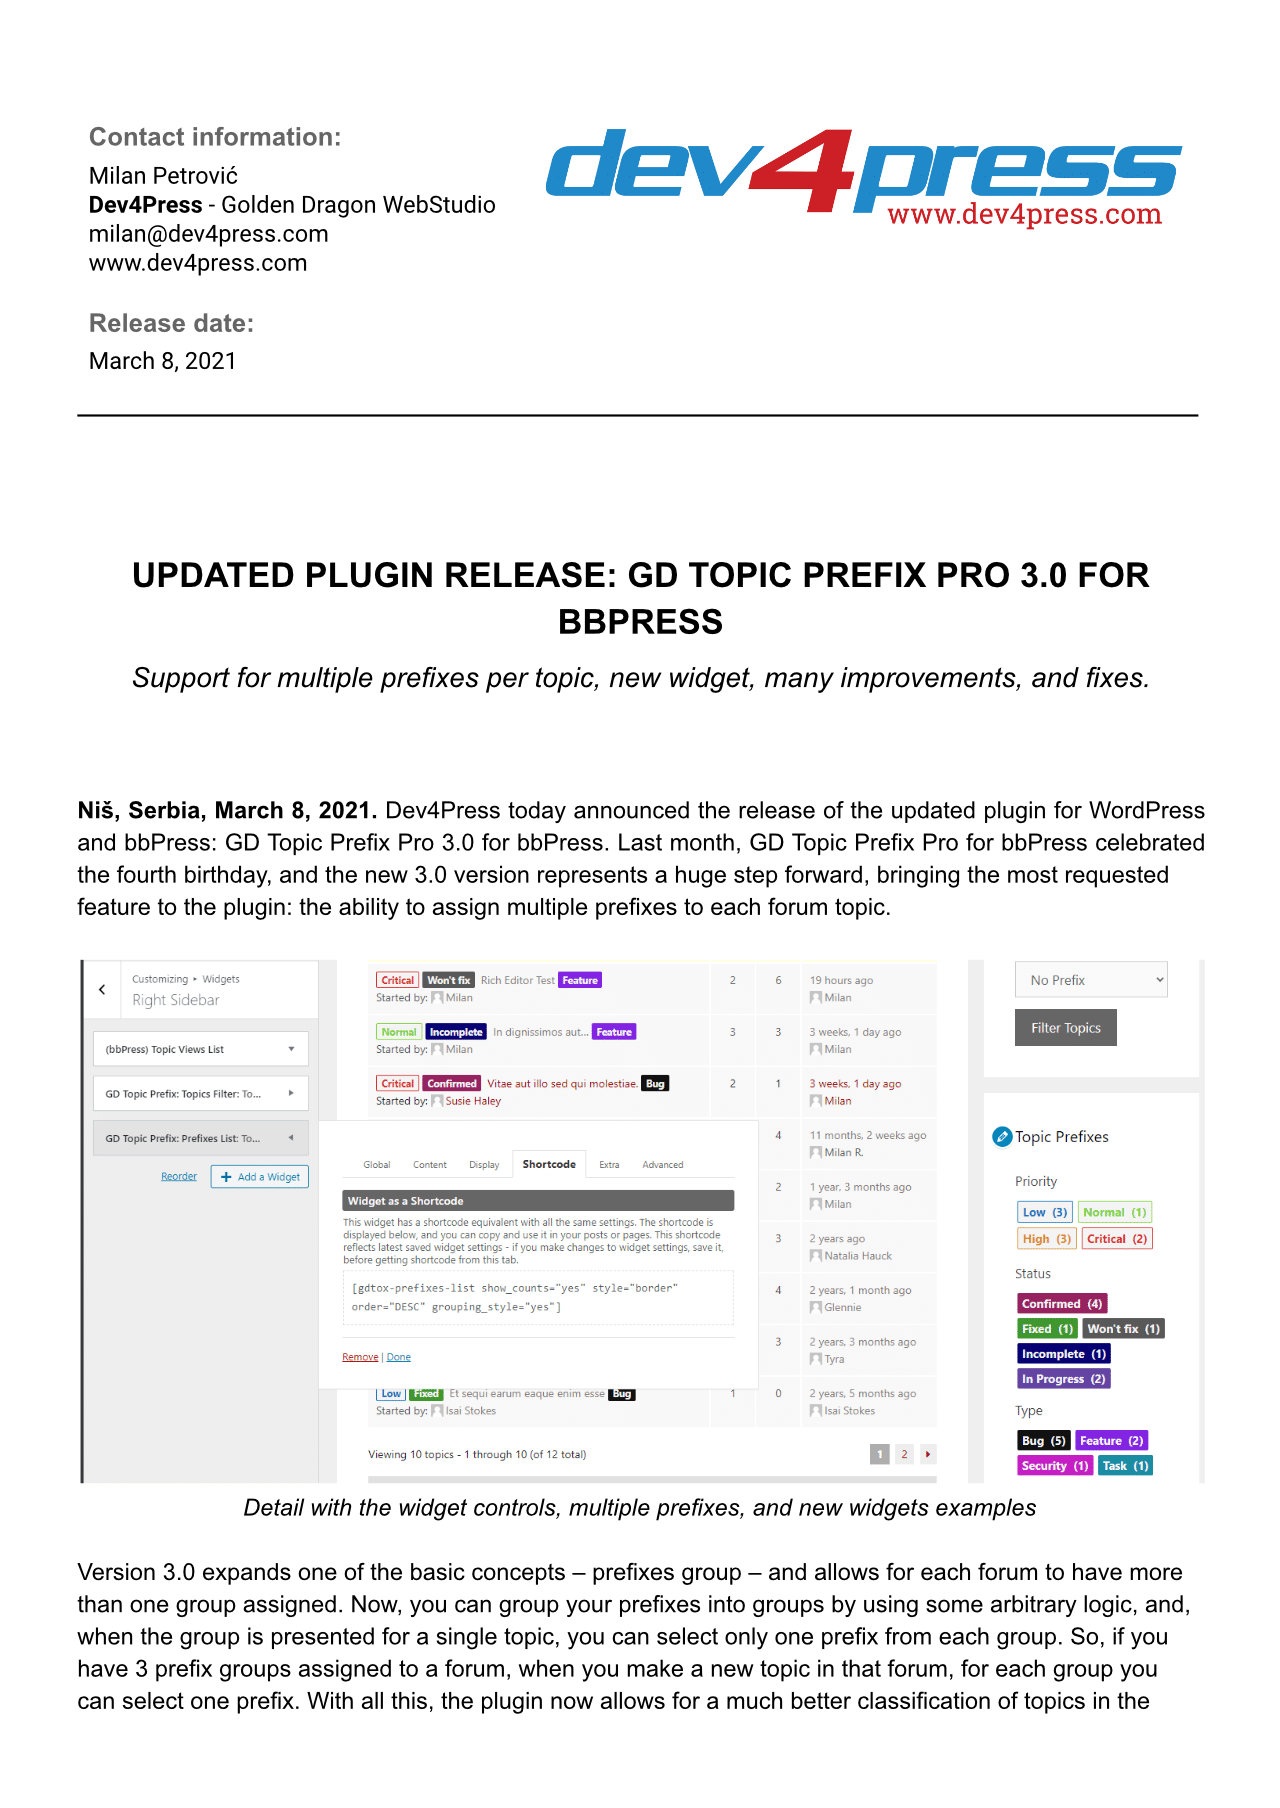 Featured image for: Updated Plugin Release: GD Topic Prefix Pro 3.0 for bbPress